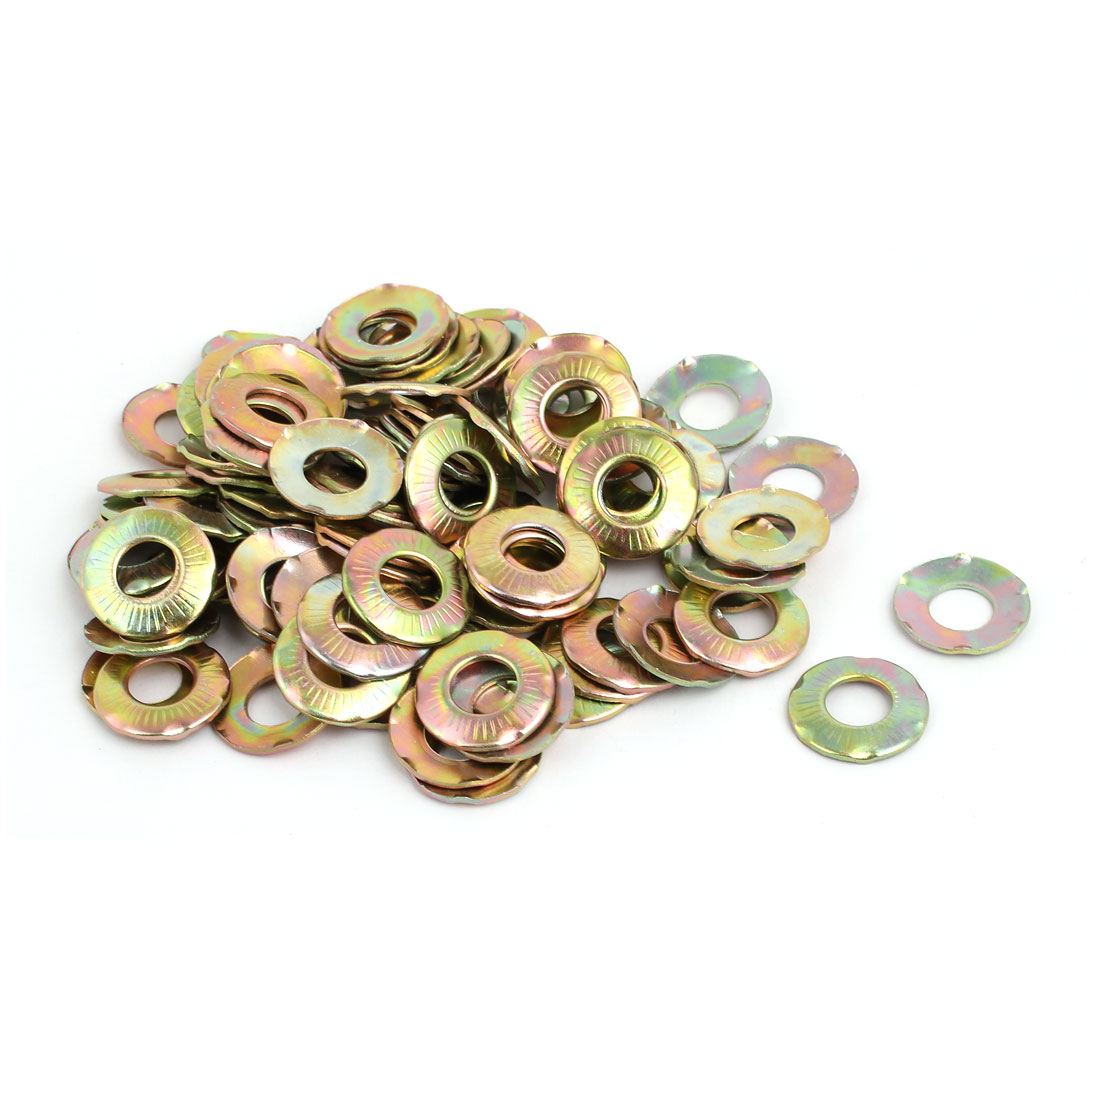 8mm Inner Dia Carbon Steel Claw Locking Washer Bronze Tone 150pcs - image 2 of 2